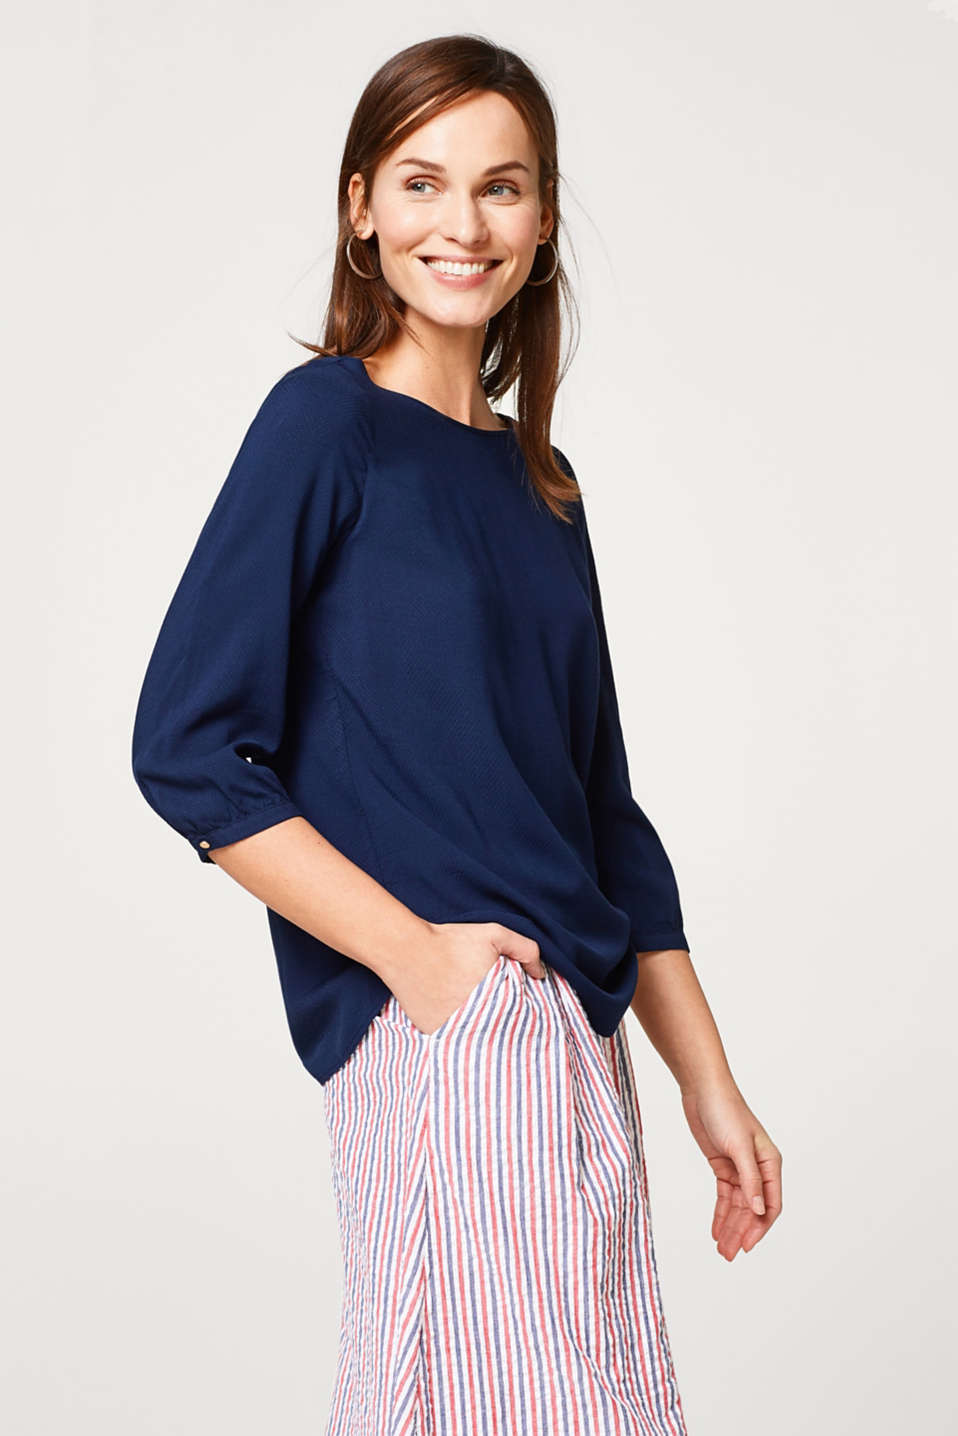 Esprit - Lightweight textured blouse with three-quarter length sleeves